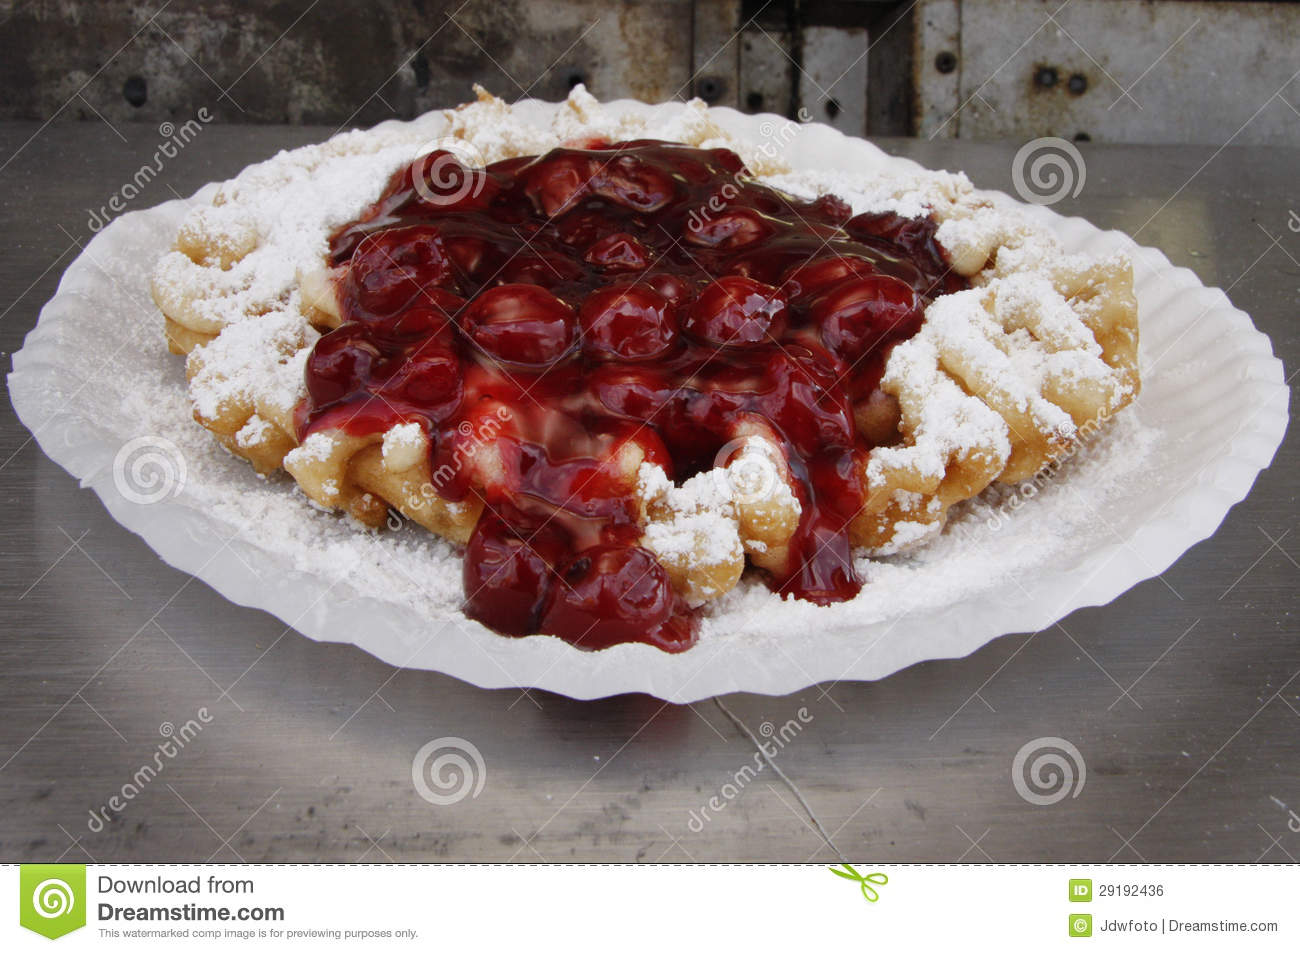 Funnel Cake Royalty Free Stock Image   Image  29192436